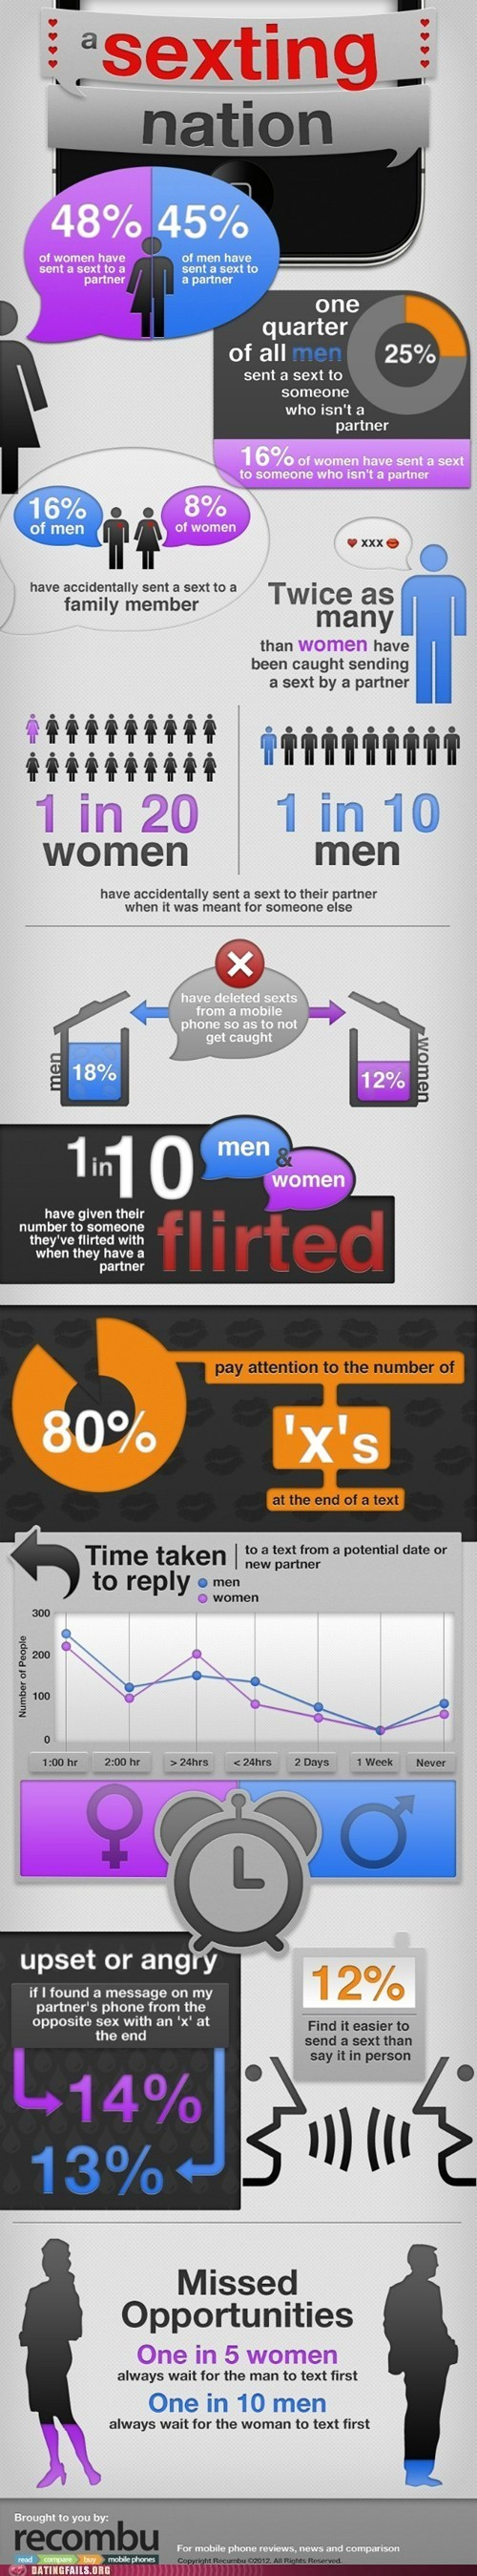 infographic,phones,sexting,sexting nation,texting